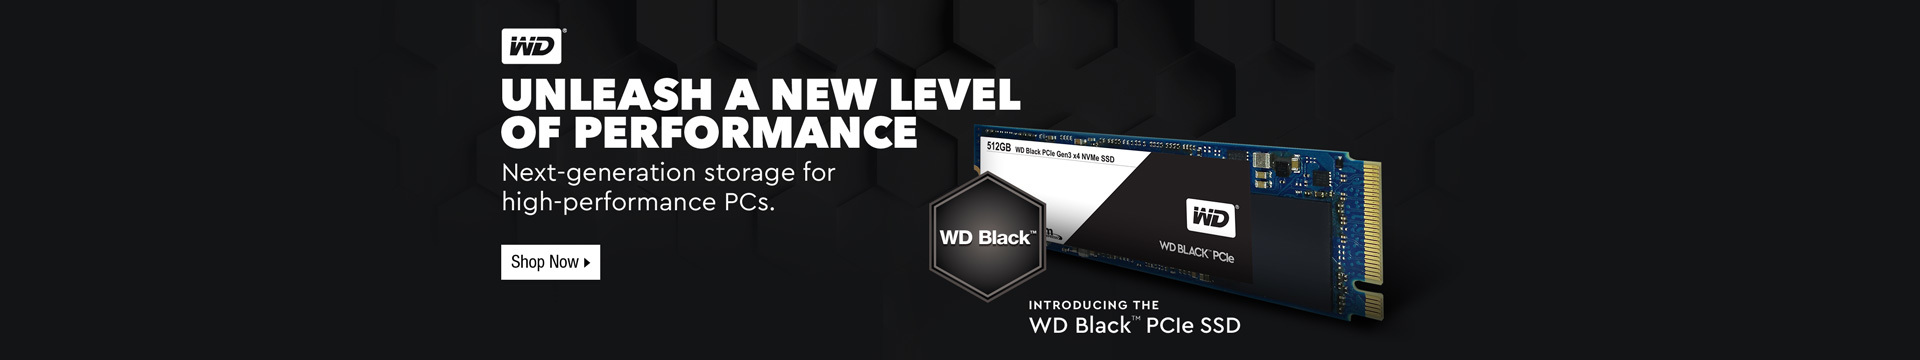 Unleash a New Level of Performance